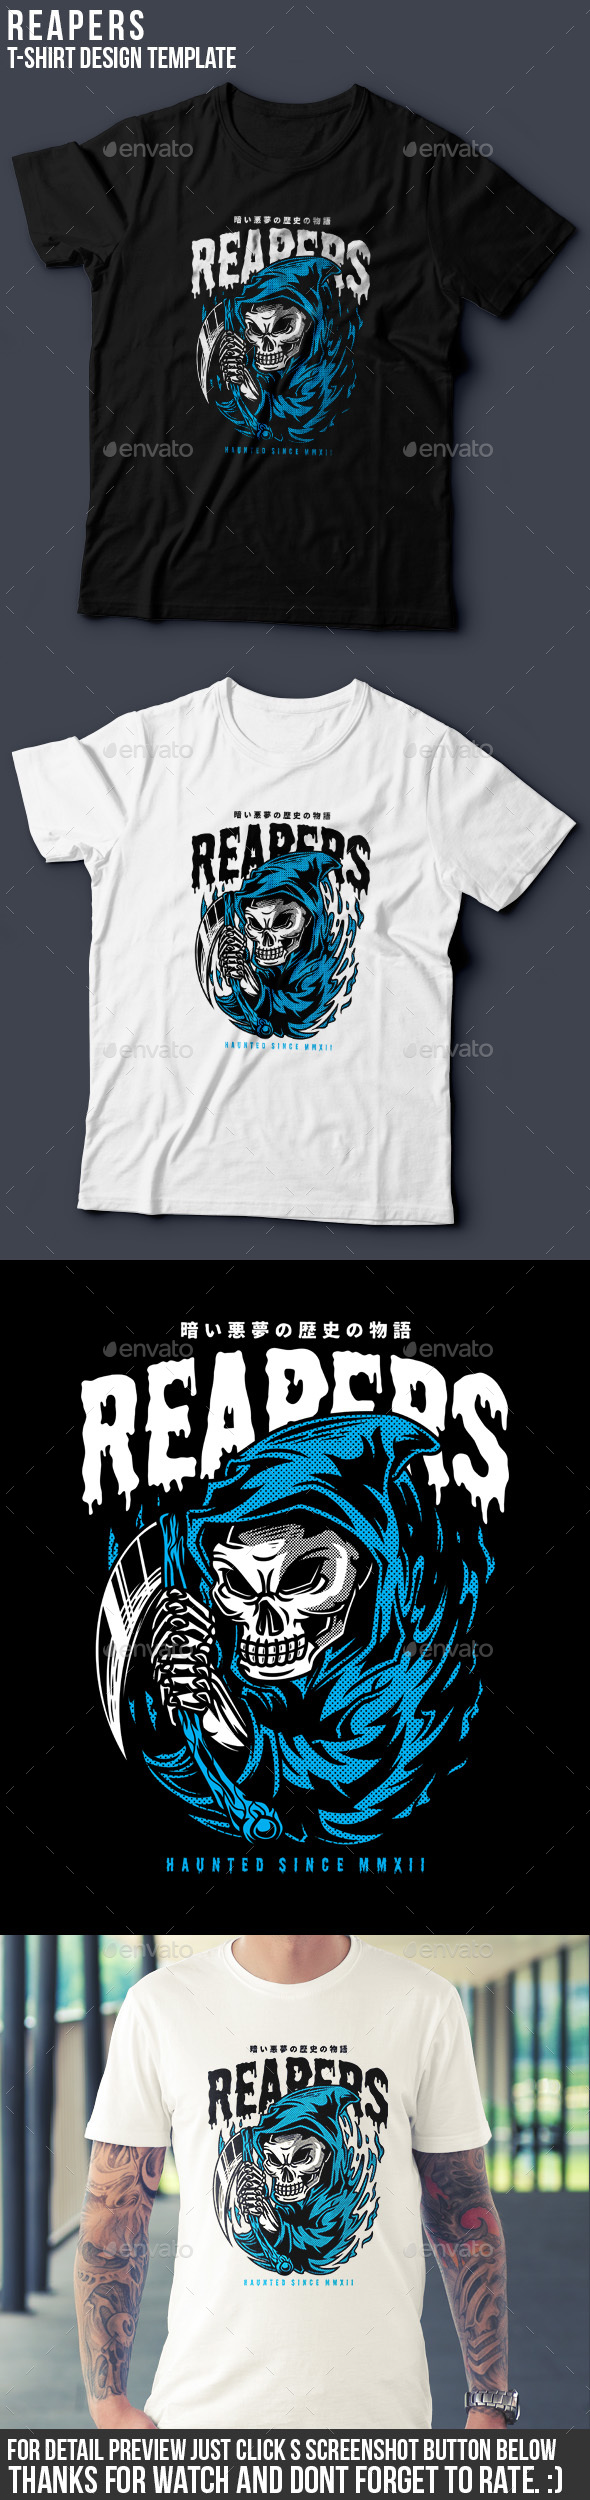 Reapers T-Shirt Design - Grunge Designs